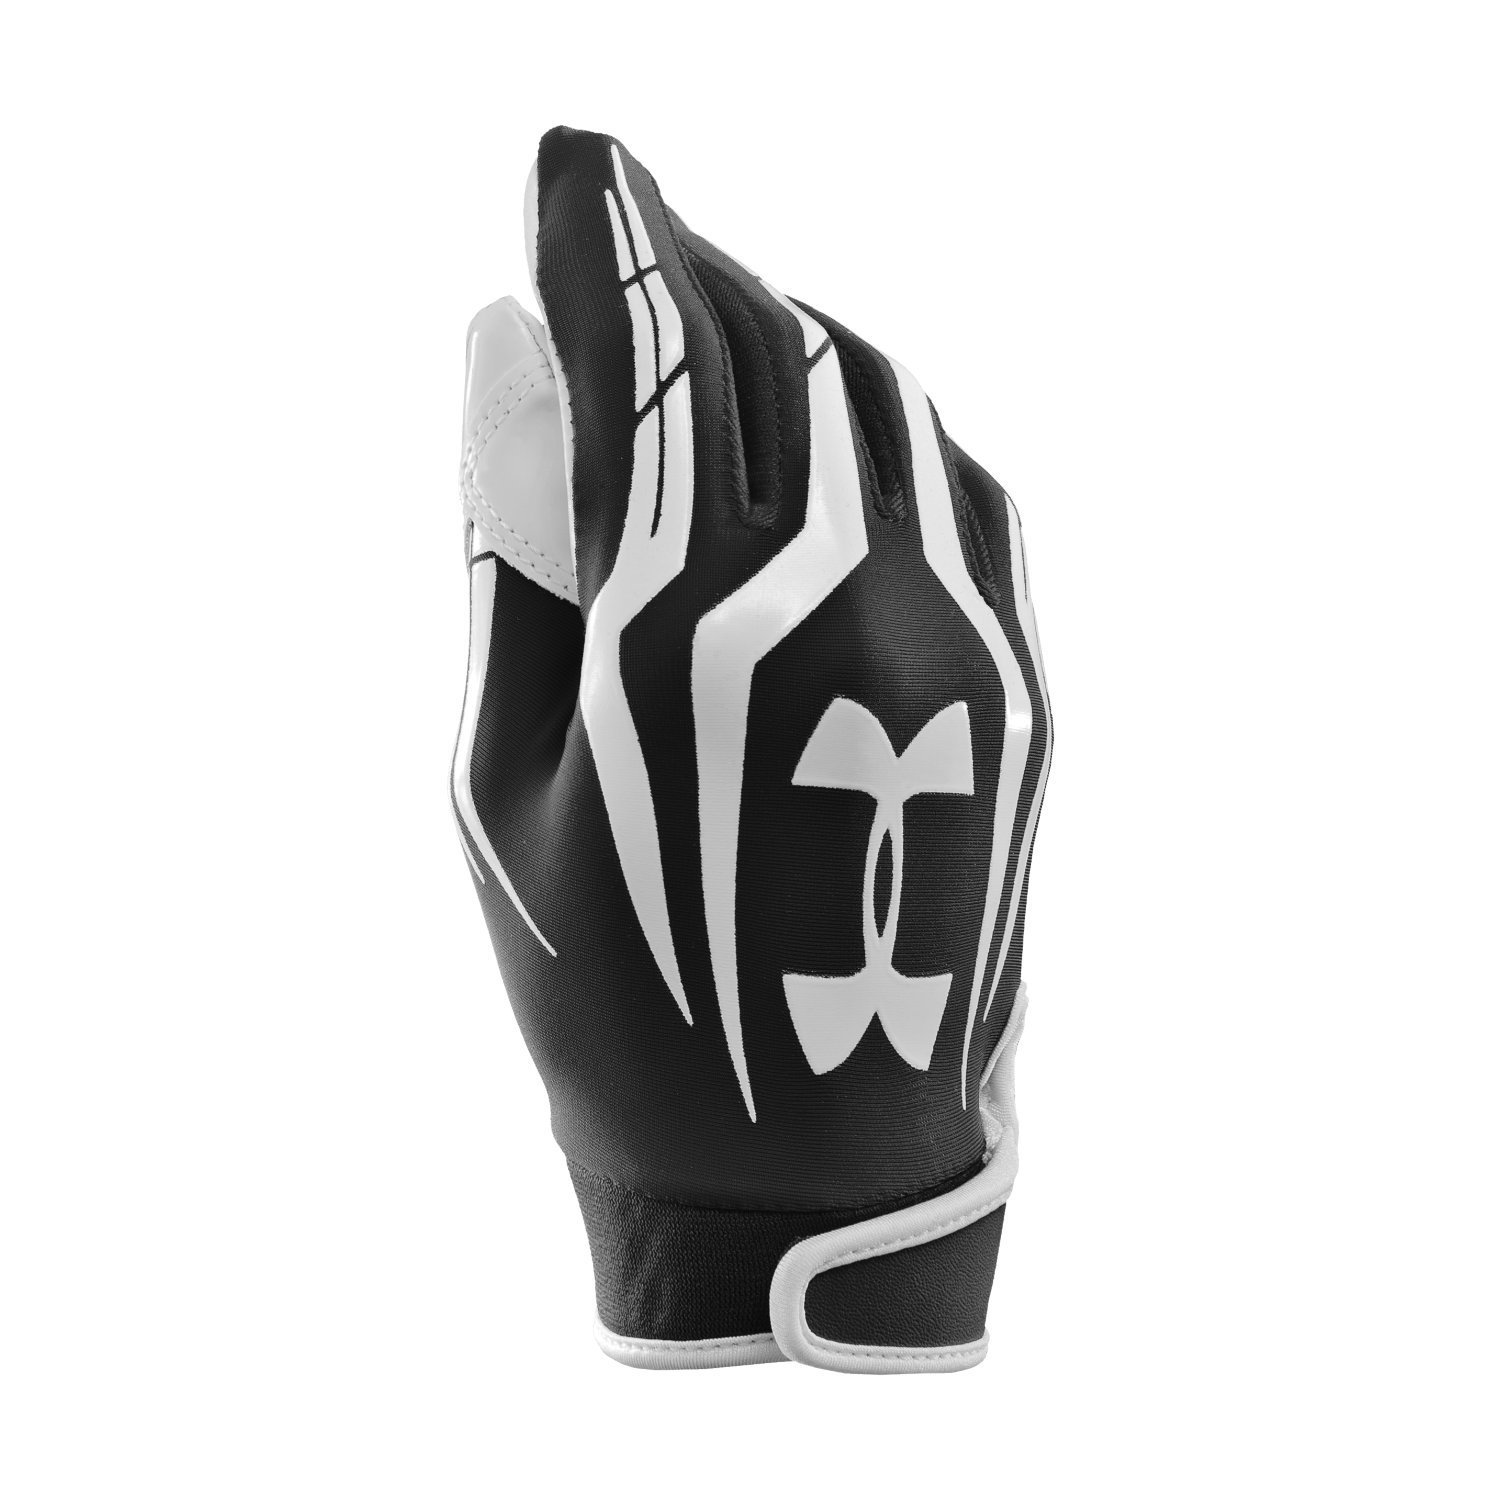 Under armour leather work gloves - Under Armour F3 Full Finger Football Gloves